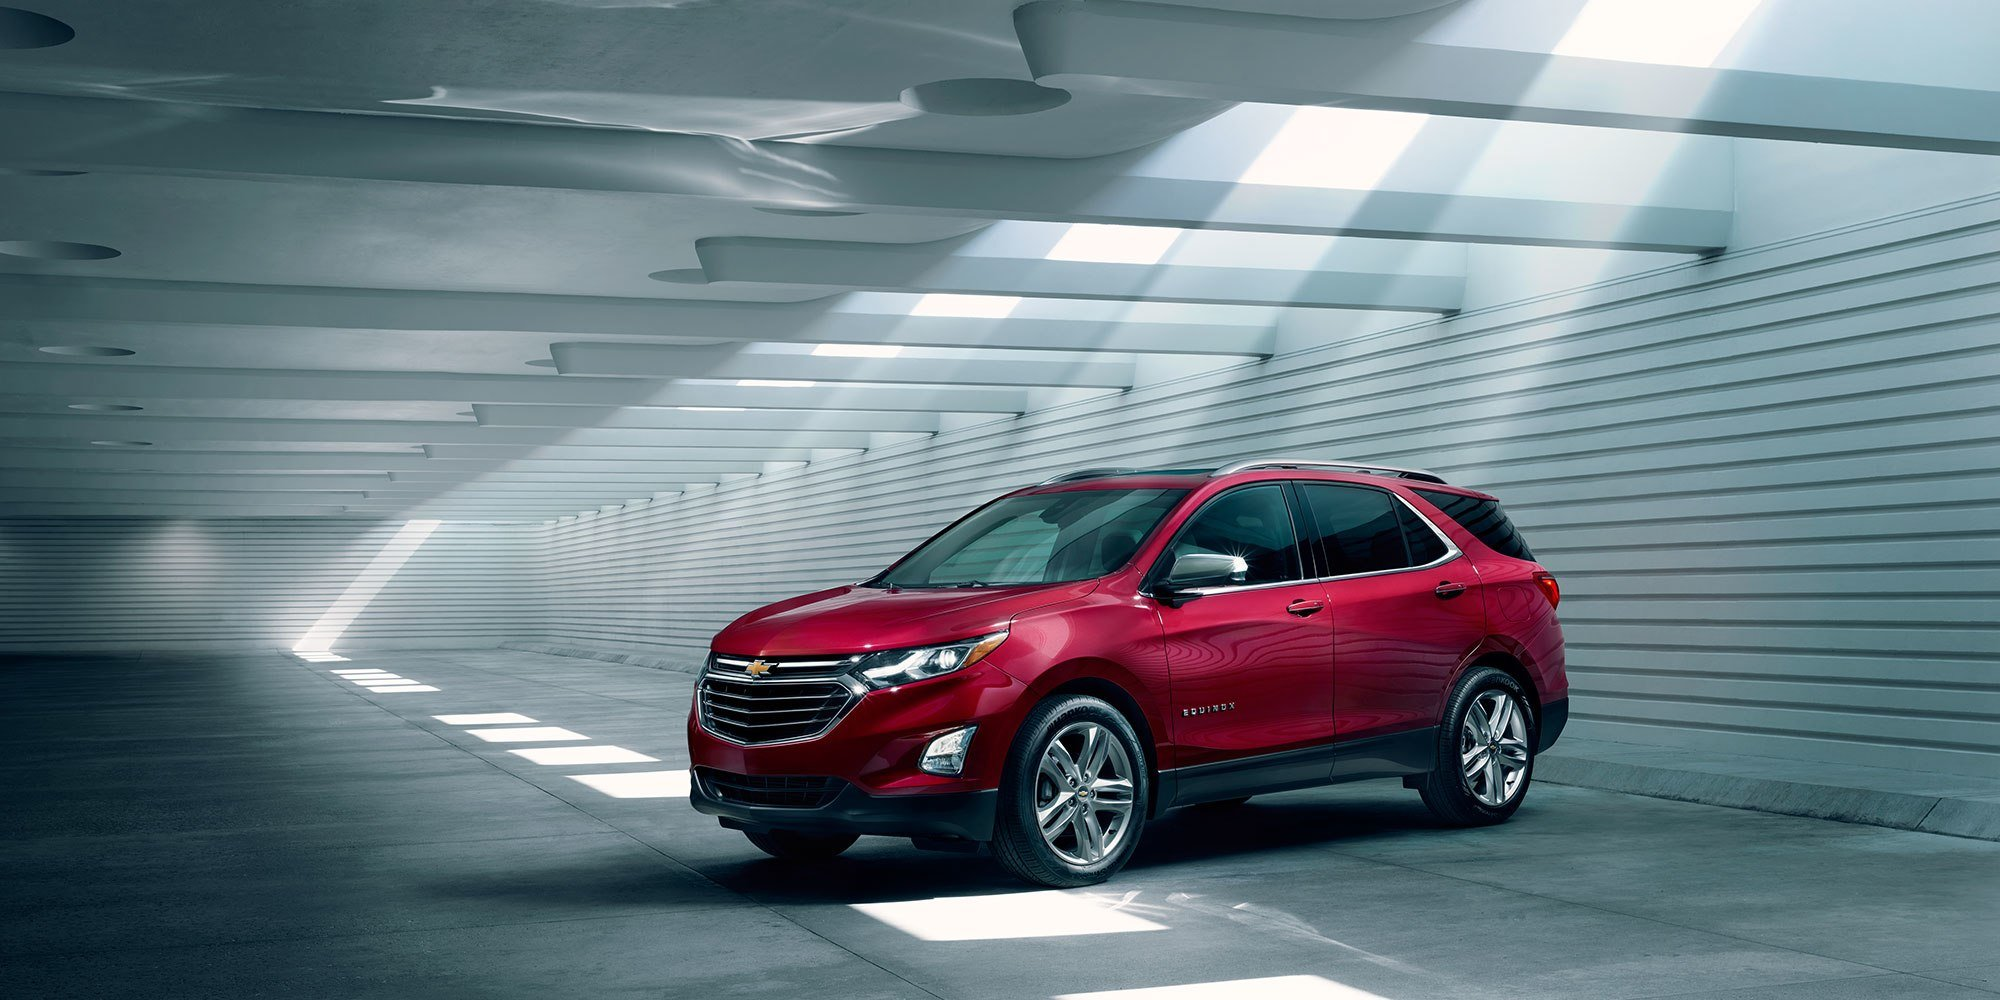 Charming New Chevrolet Equinox For Sale Wexford PA